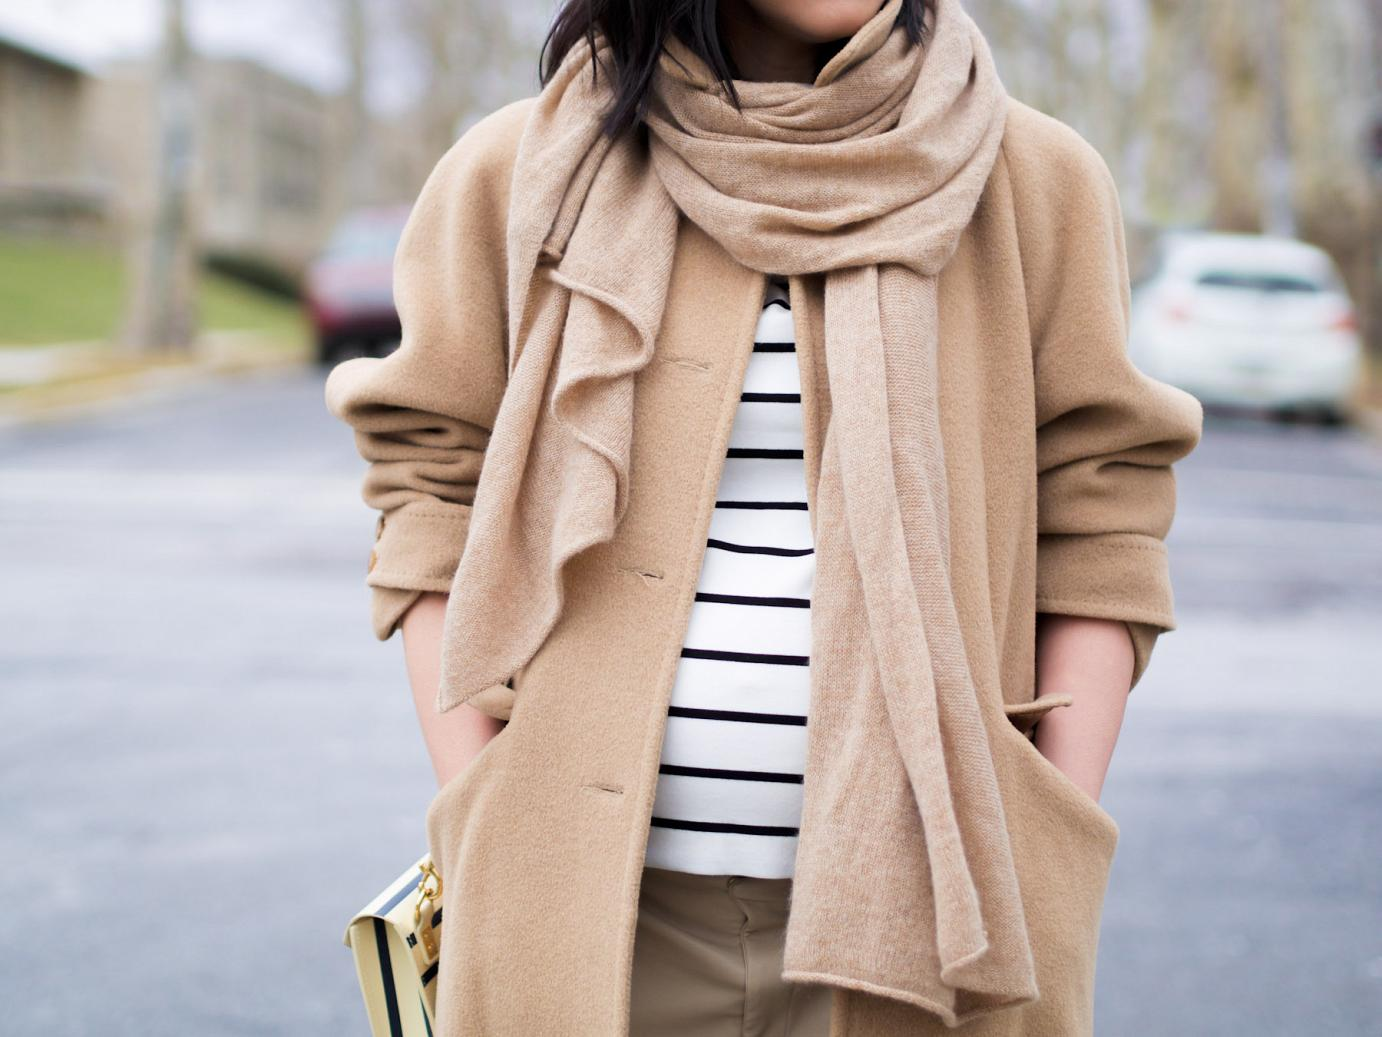 bittersweet colours, camel coat, camel and stripes, pink heels, sophie hulme bag, street style, winter trends, striped bag, neutral trend, maternity style, 32 weeks